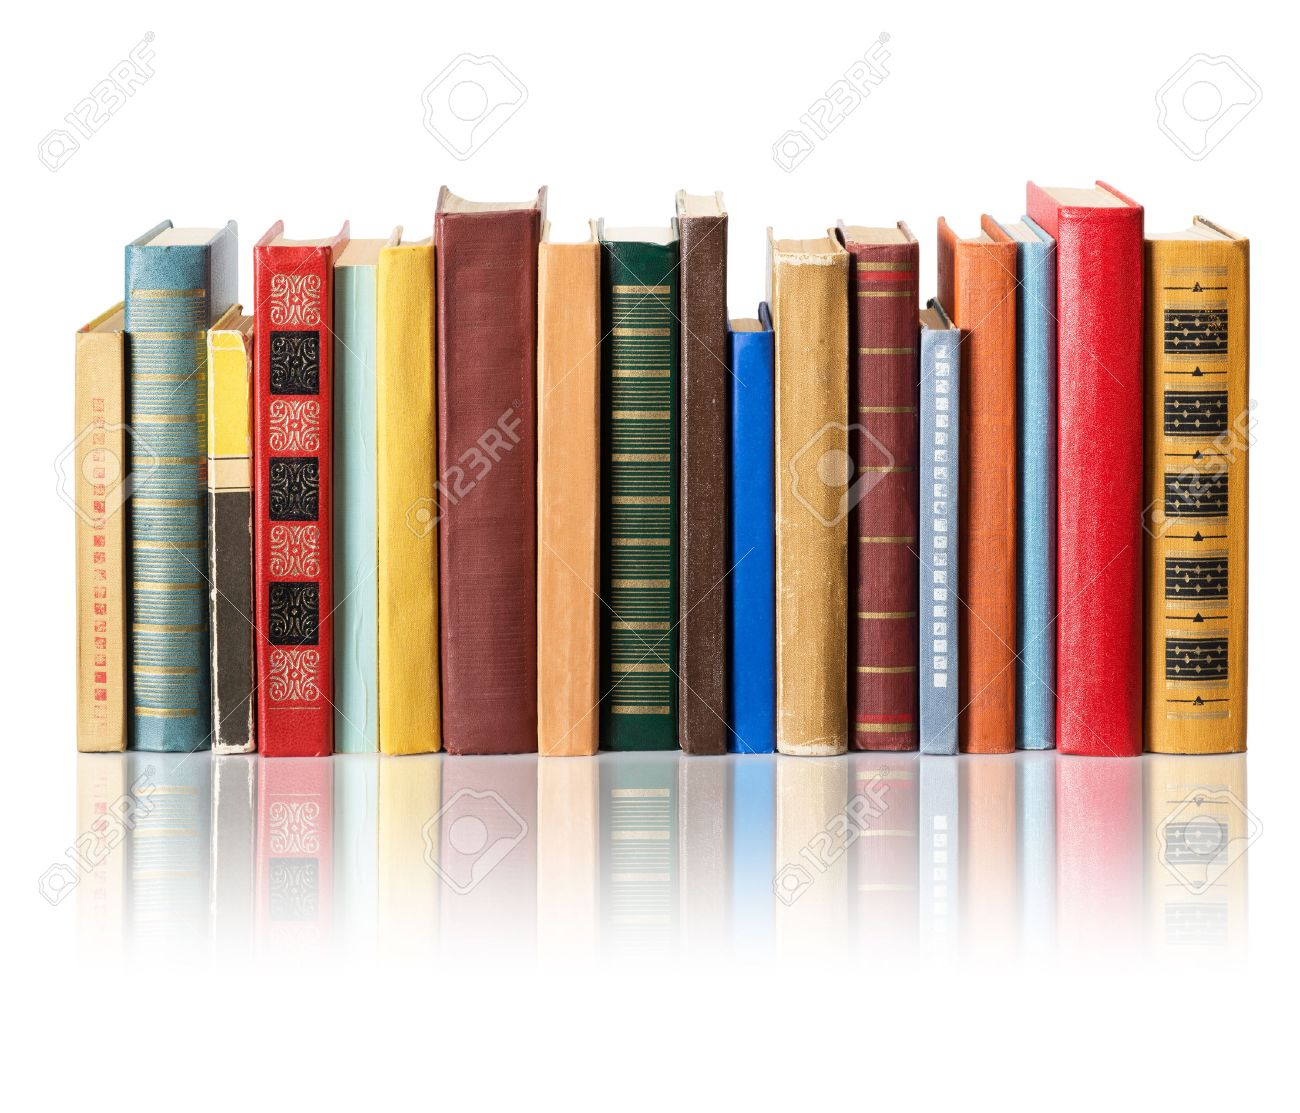 Books on white background with reflection Stock Photo - 35086110